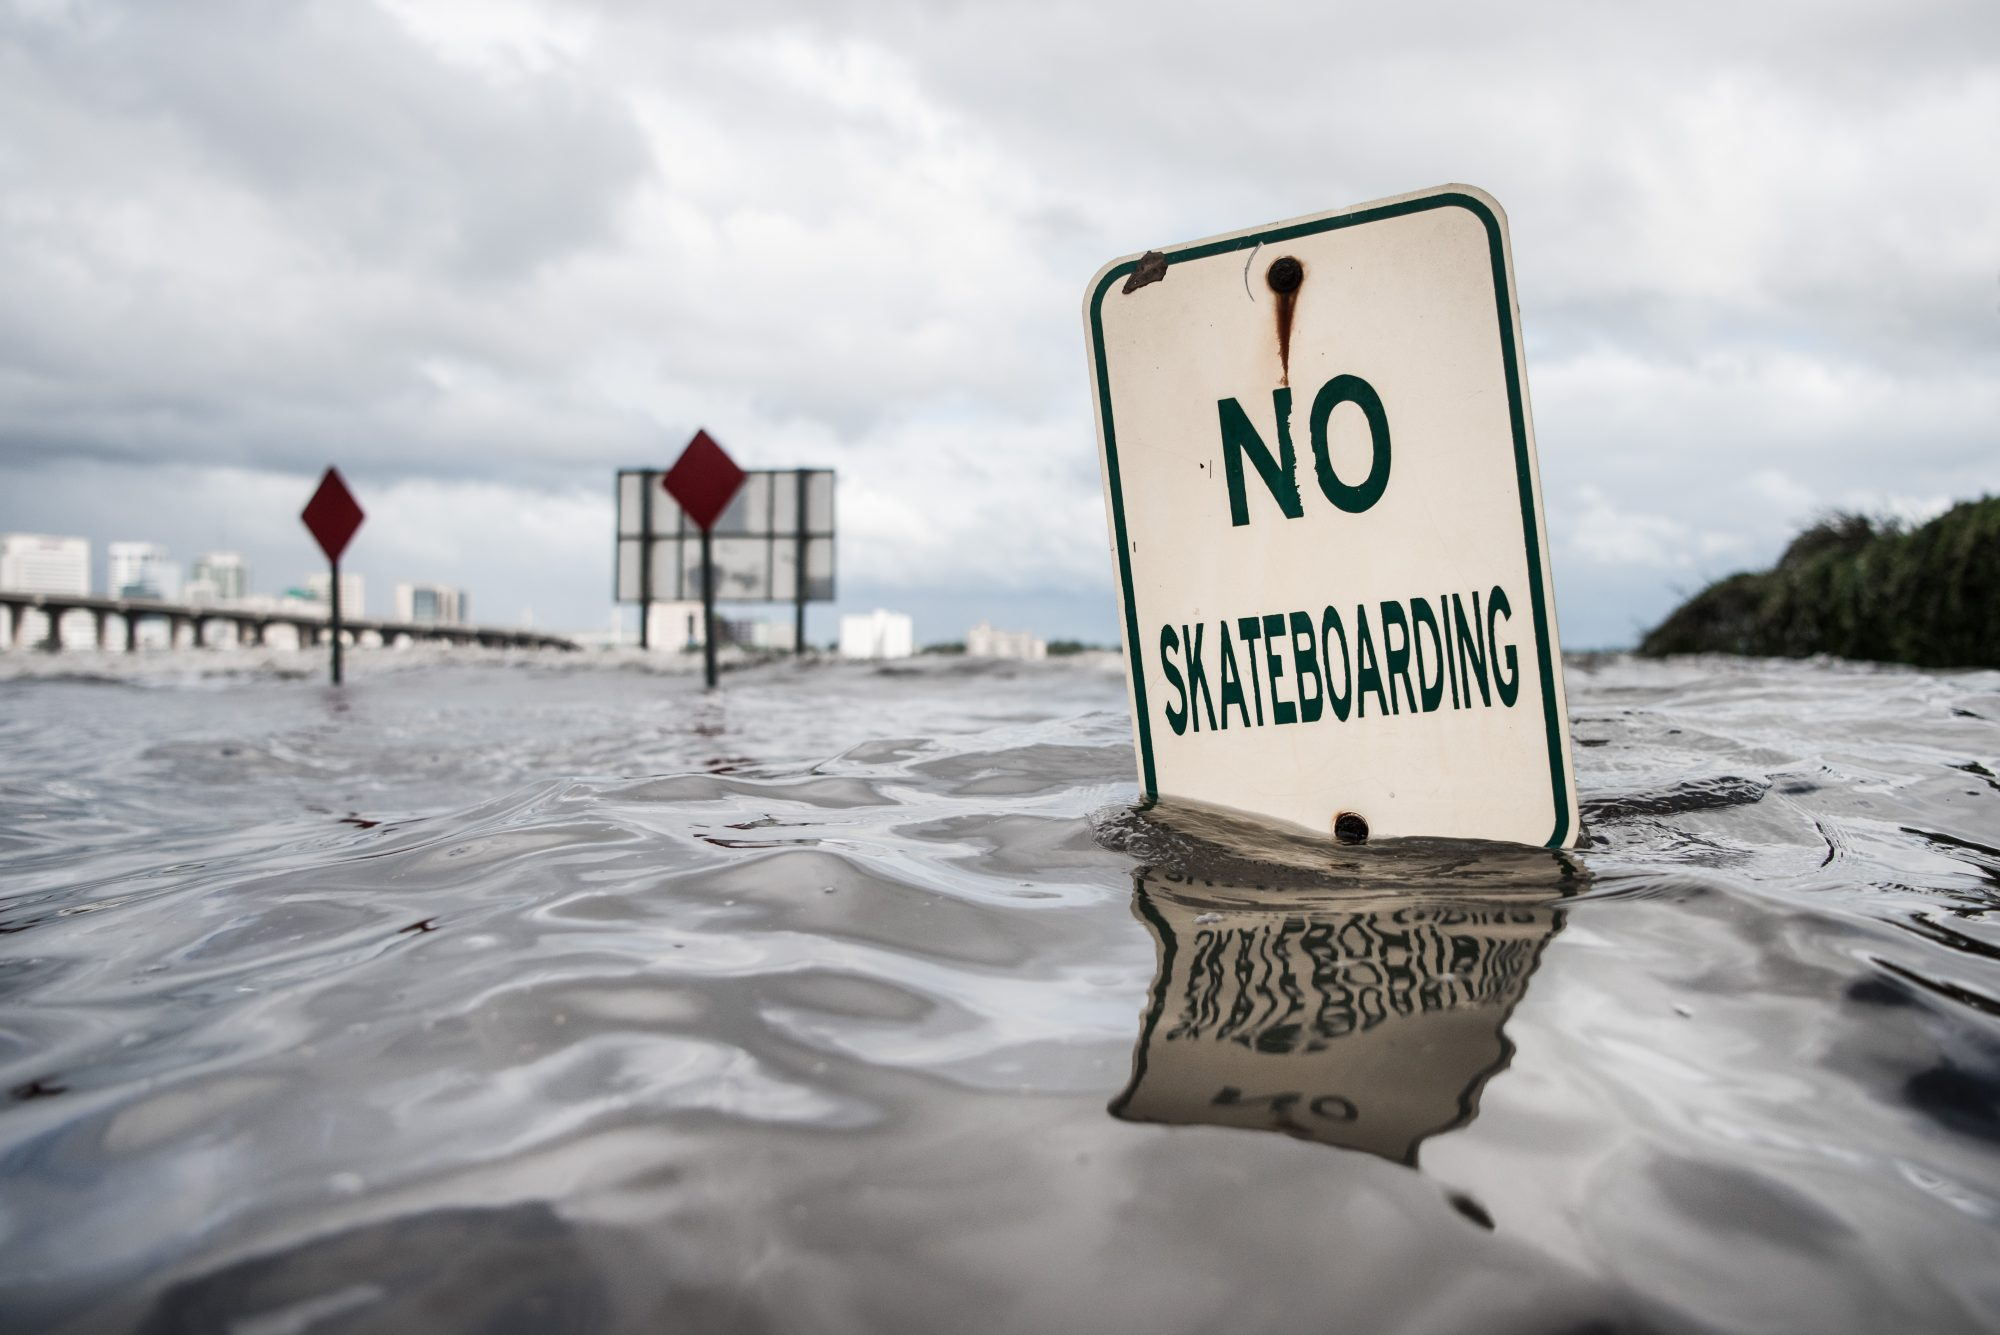 JACKSONVILLE, FL - SEPTEMBER 11: The St. Johns River rises from storm surge flood waters from Hurricane Irma on Sept. 11, 2017 in Jacksonville, Florida. Flooding in downtown Jacksonville along the river topped a record set during Hurricane Dora in 1965. (Photo by Sean Rayford/Getty Images)